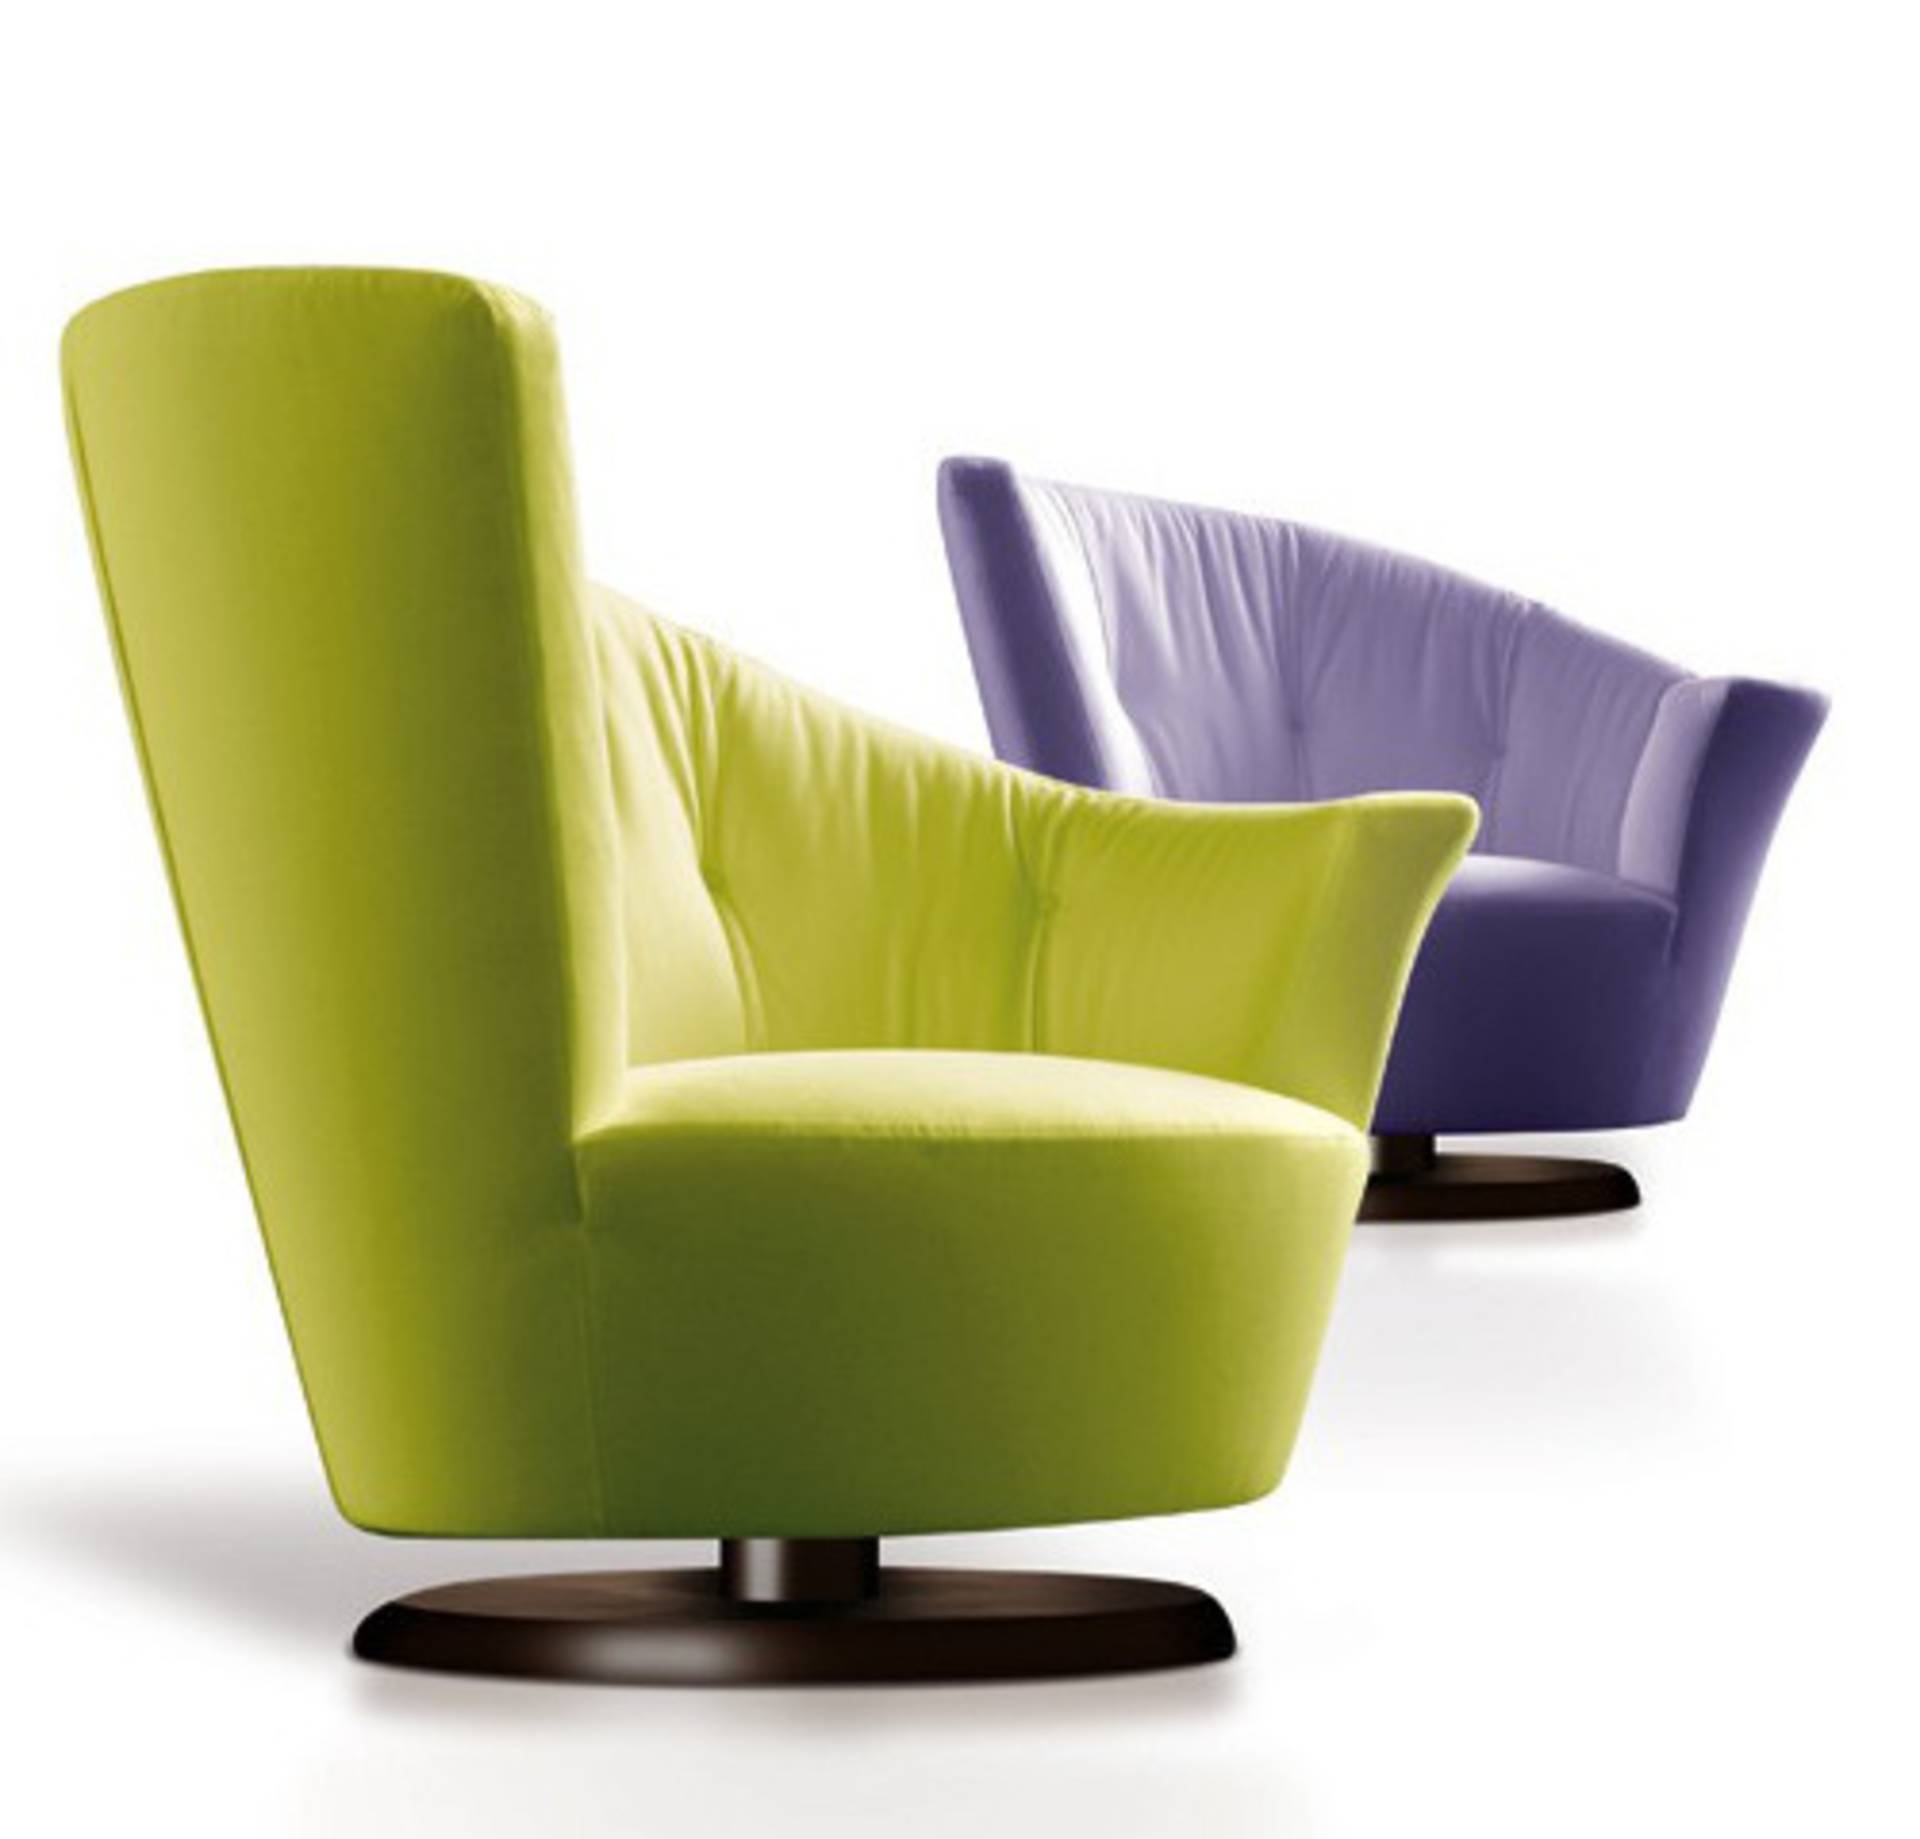 Charmant Modern Swivel Chairs For Living Room 11